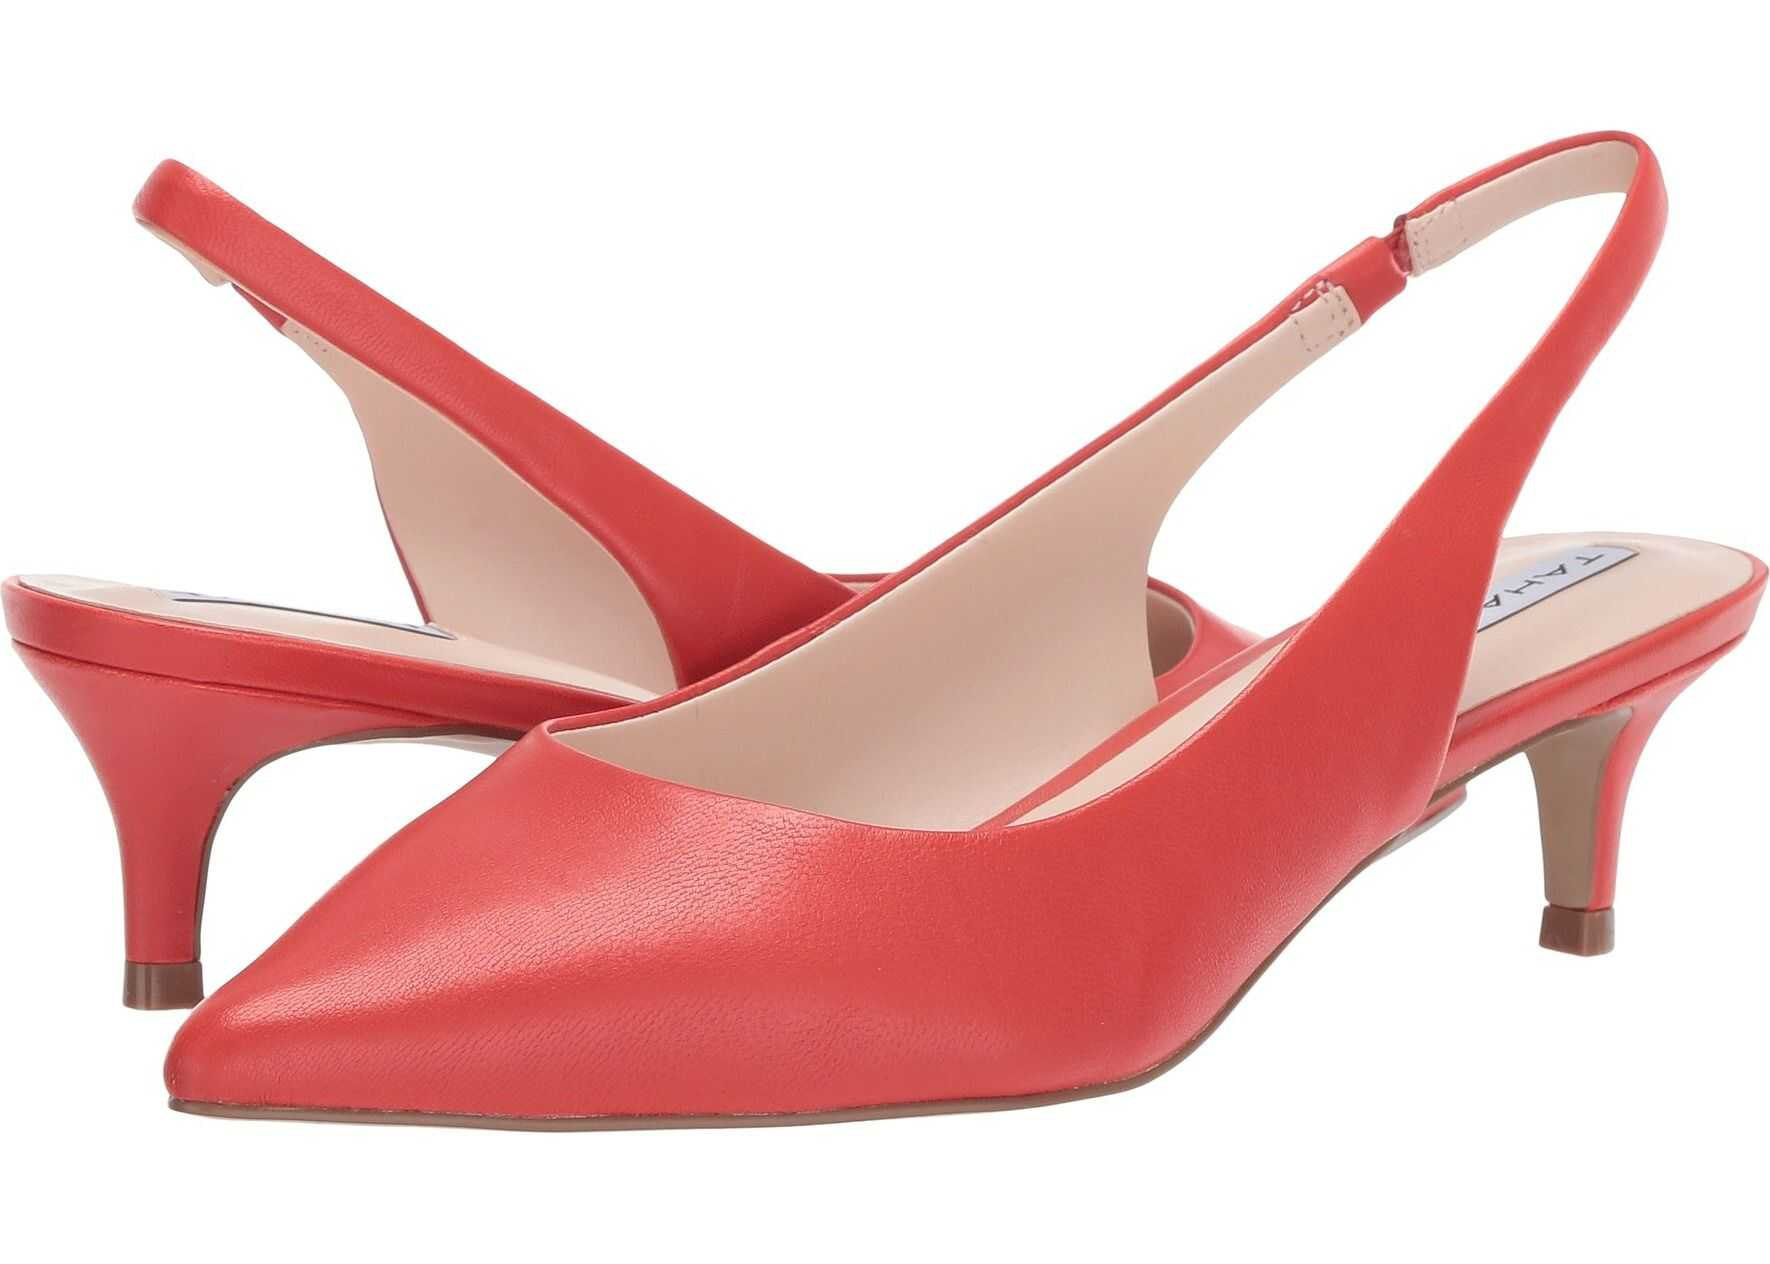 Tahari Finnley Slingback Kitten Heel* Coral Leather